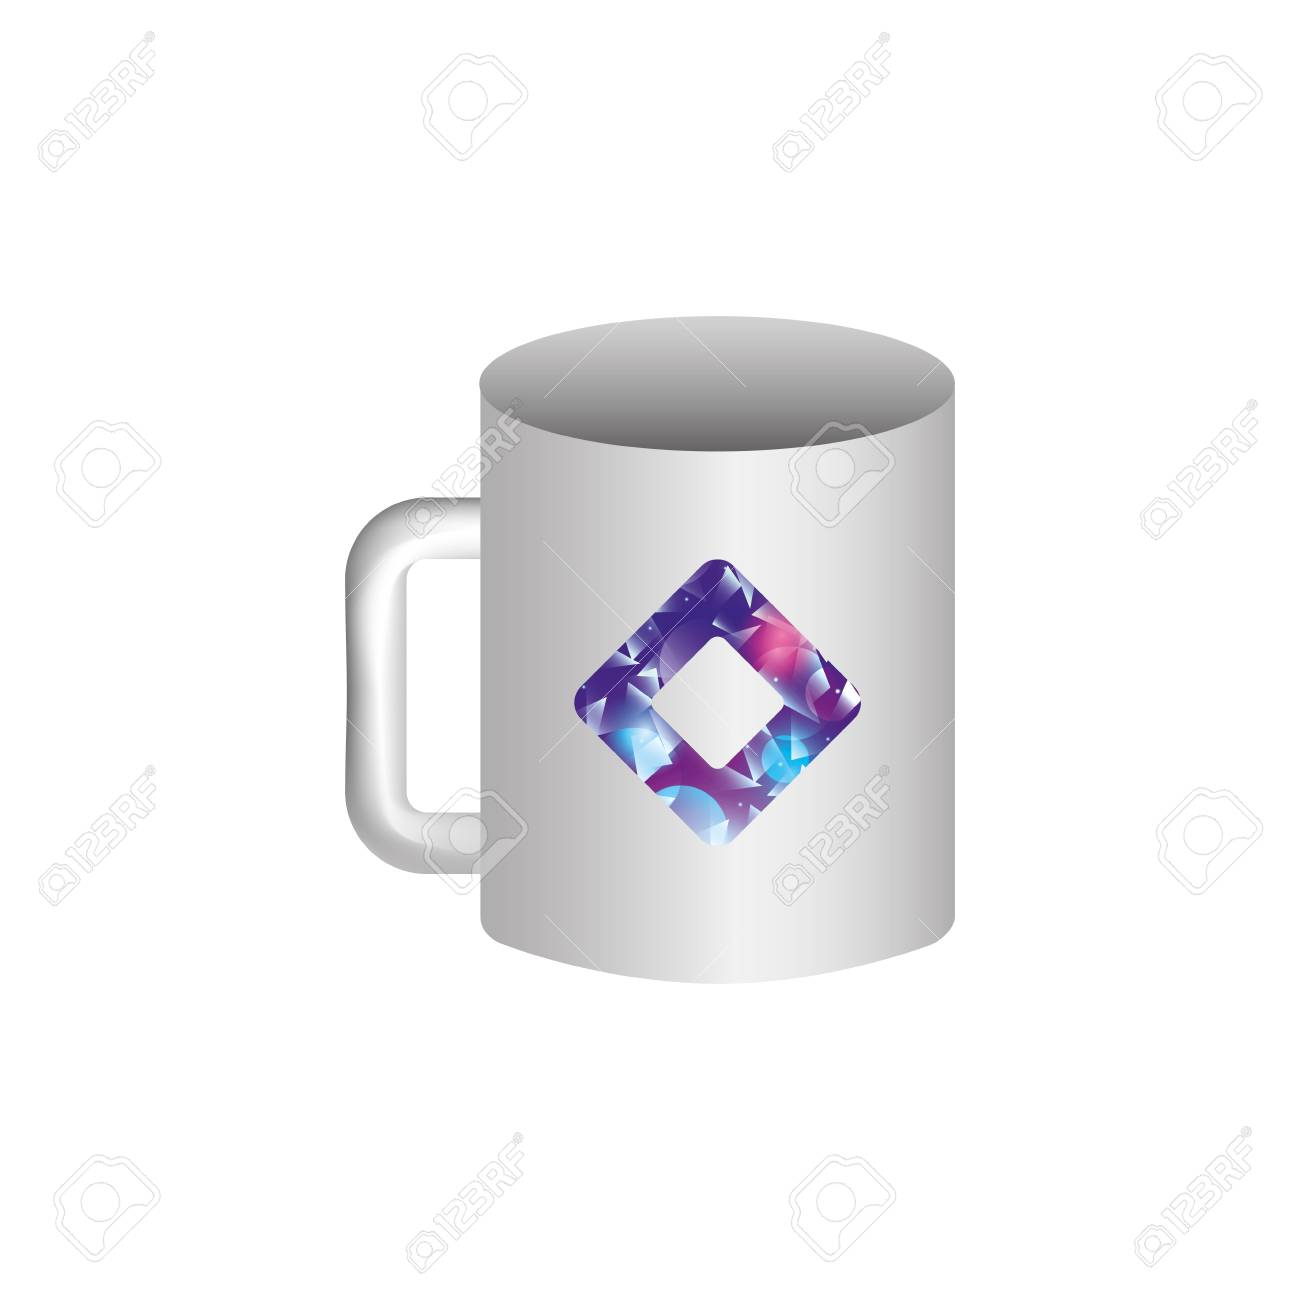 Mockup Of Corporate Ceramic Mug Template For Branding Identity Royalty Free Cliparts Vectors And Stock Illustration Image 88893934